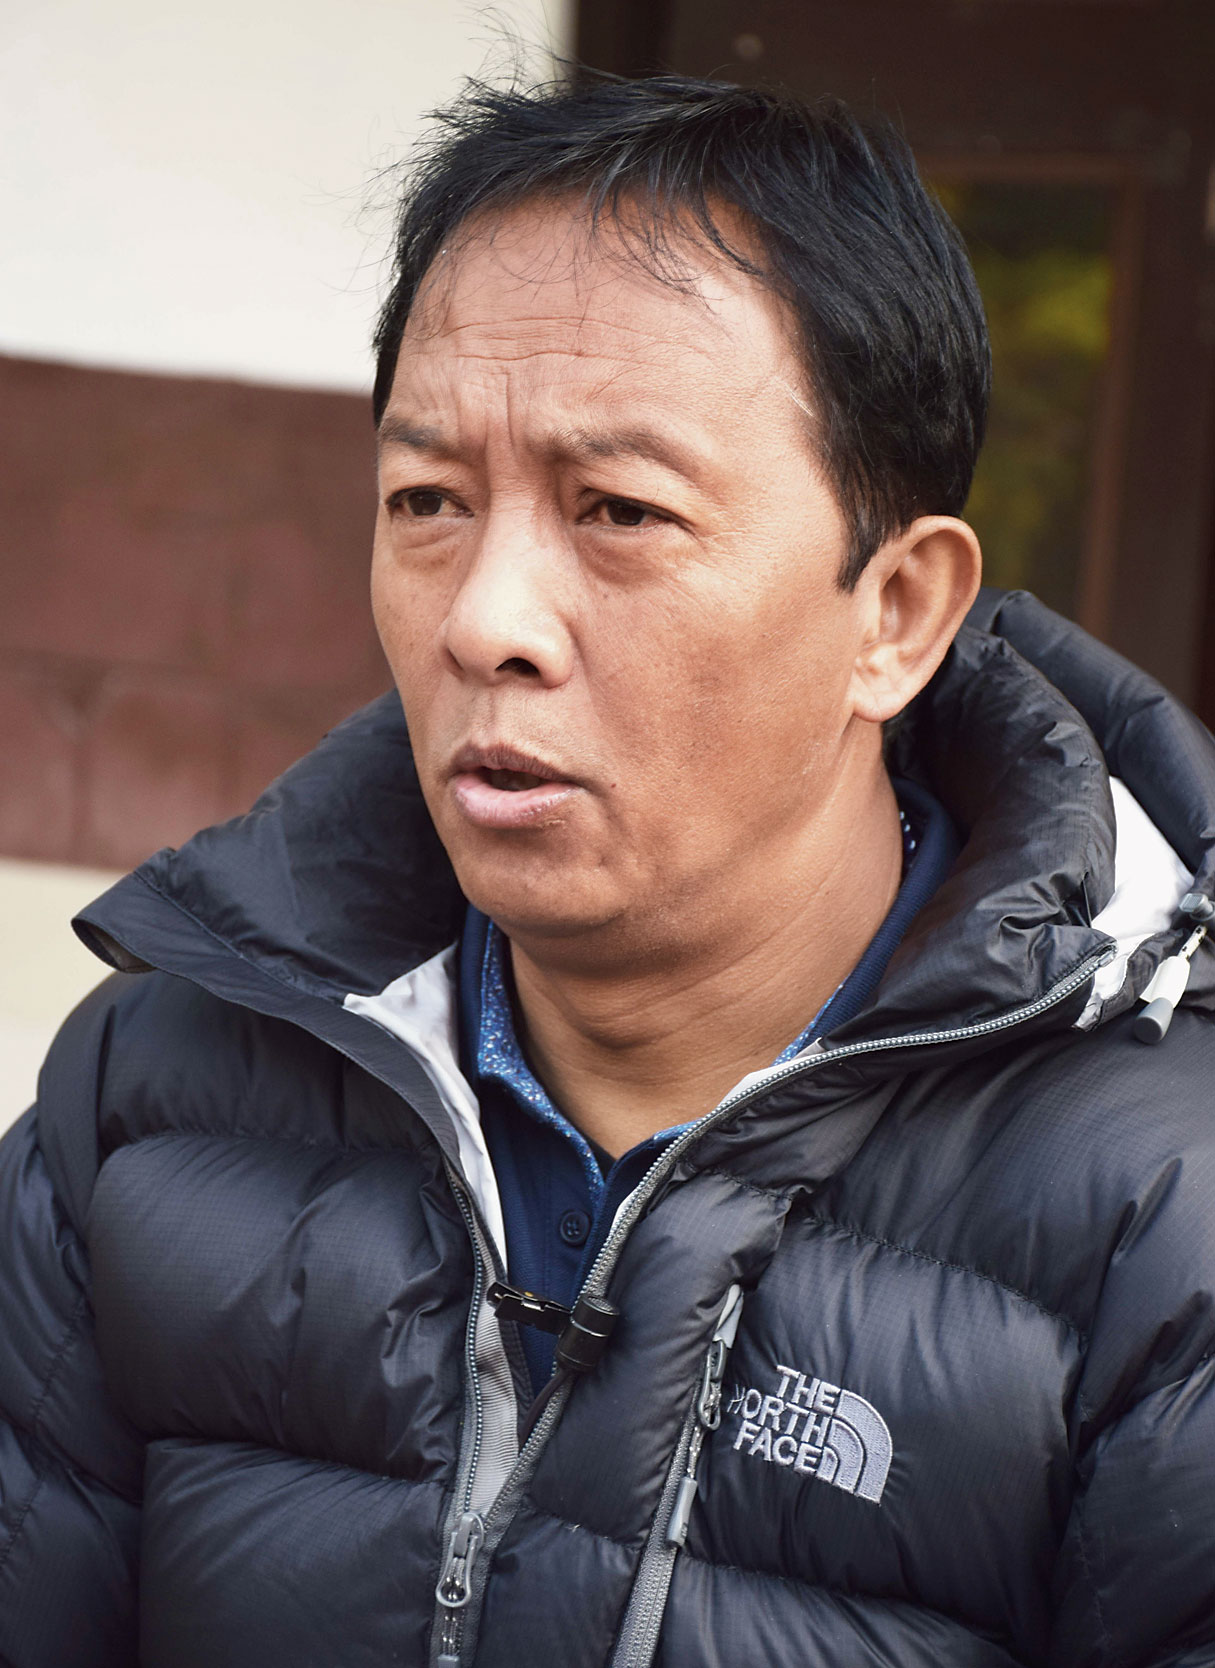 """Binay Tamang, the president of the Gorkha Janmukti Morcha, said his party was committed to abiding by the""""no-strike"""" policy announced by it after the 104-day shutdown."""